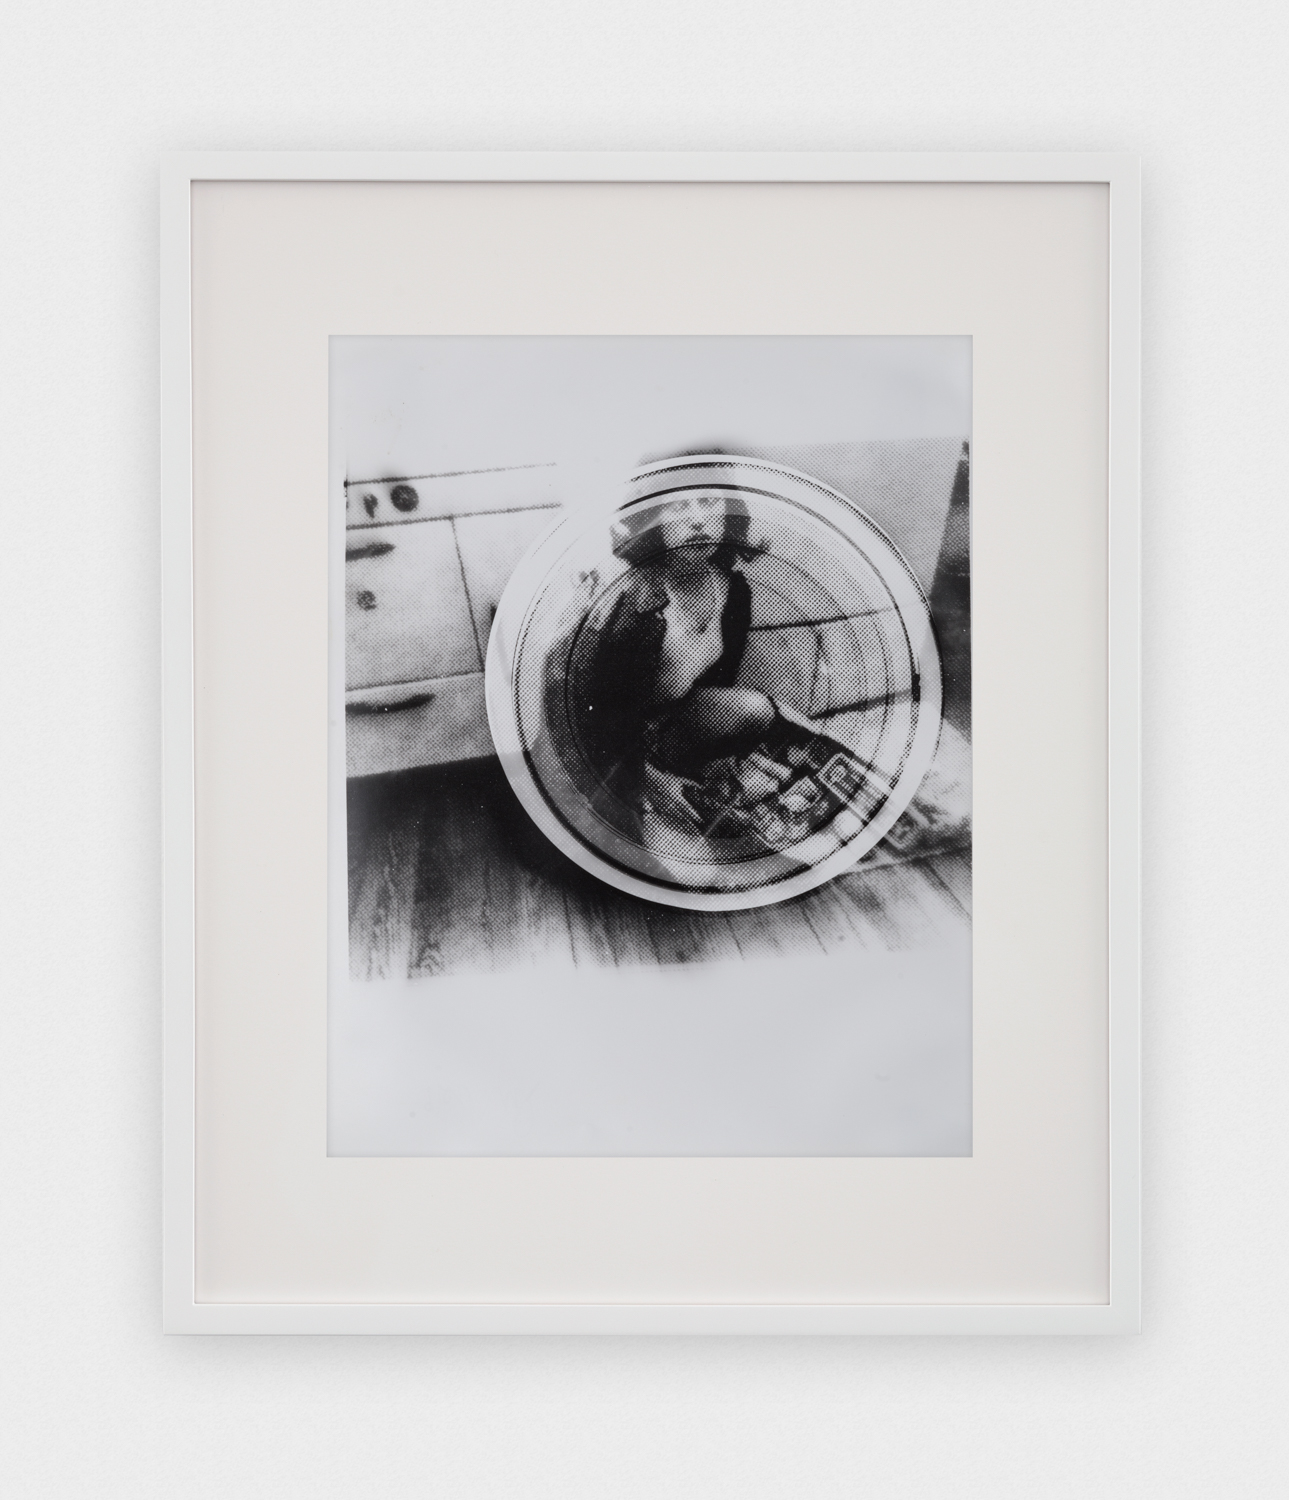 Jason Meadows  Concentric Test Strip, Cindy Sherman Bootleg #1  2016 Selenium-toned silver gelatin print 14h x 10w in JM047